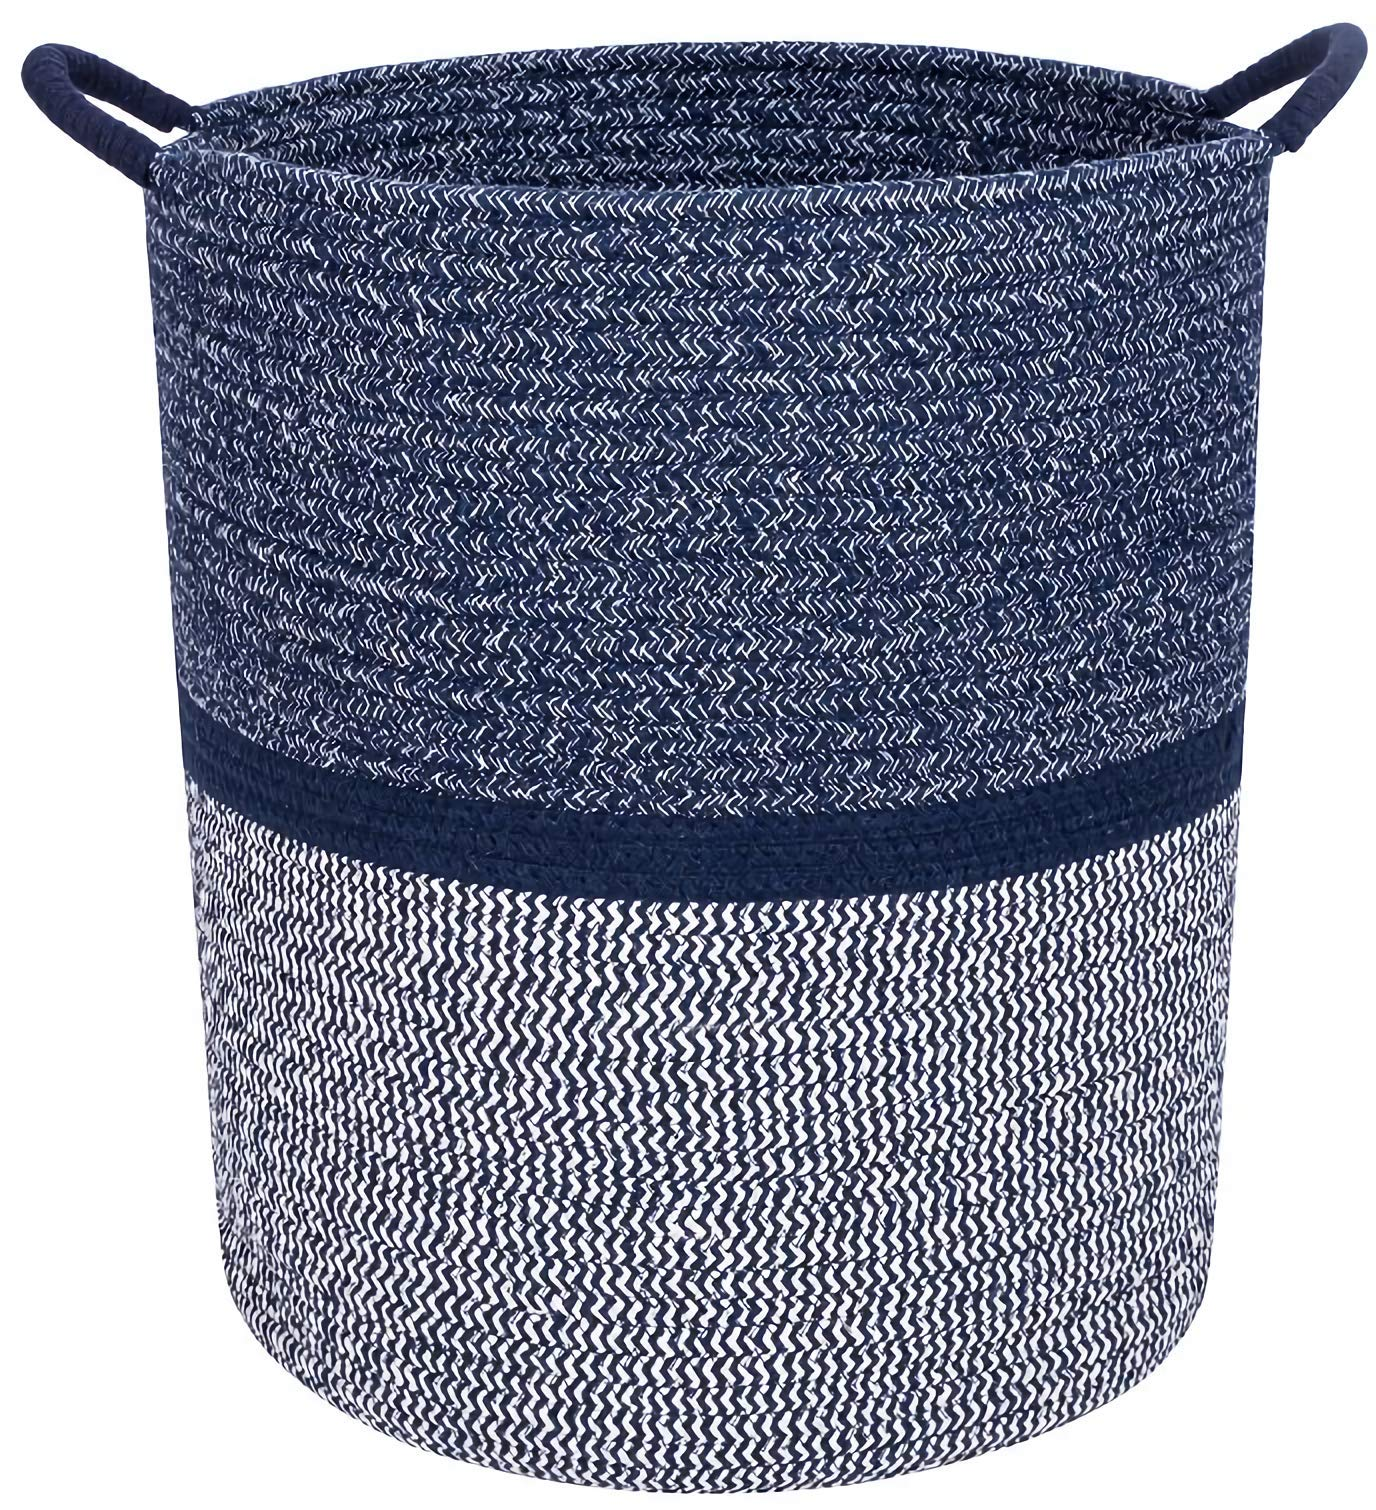 Celebraby - Premium Cotton Rope Basket for Laundry, Blanket, Towel, Nursery, Baby & Kids Toy Bin - Decorative Navy Blue & White Coiled Round Hamper with Handles - 16x13.5'' Thick Woven Storage Baskets by Celebraby